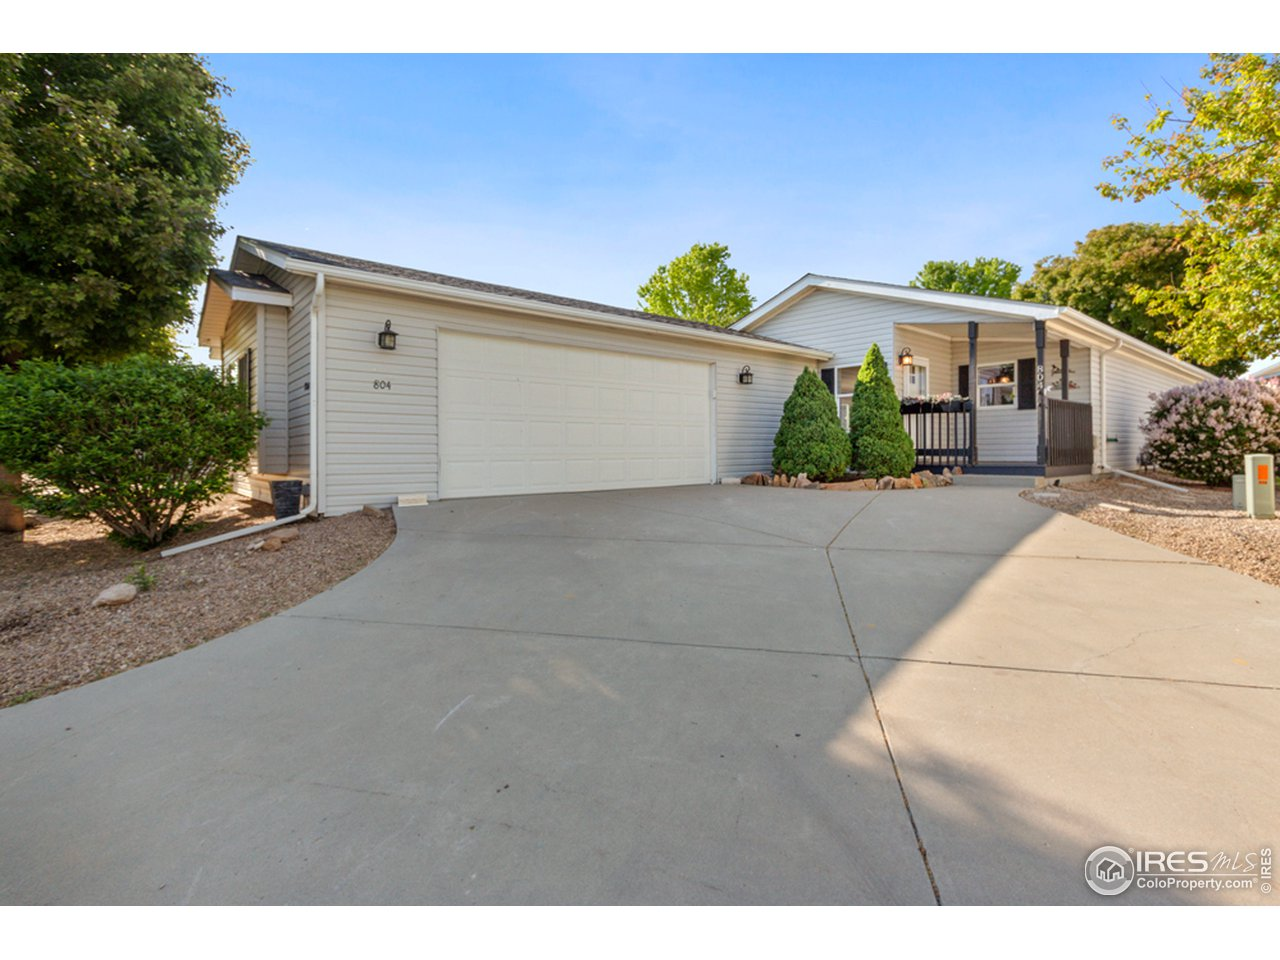 804 Sunchase Dr, Fort Collins CO 80524